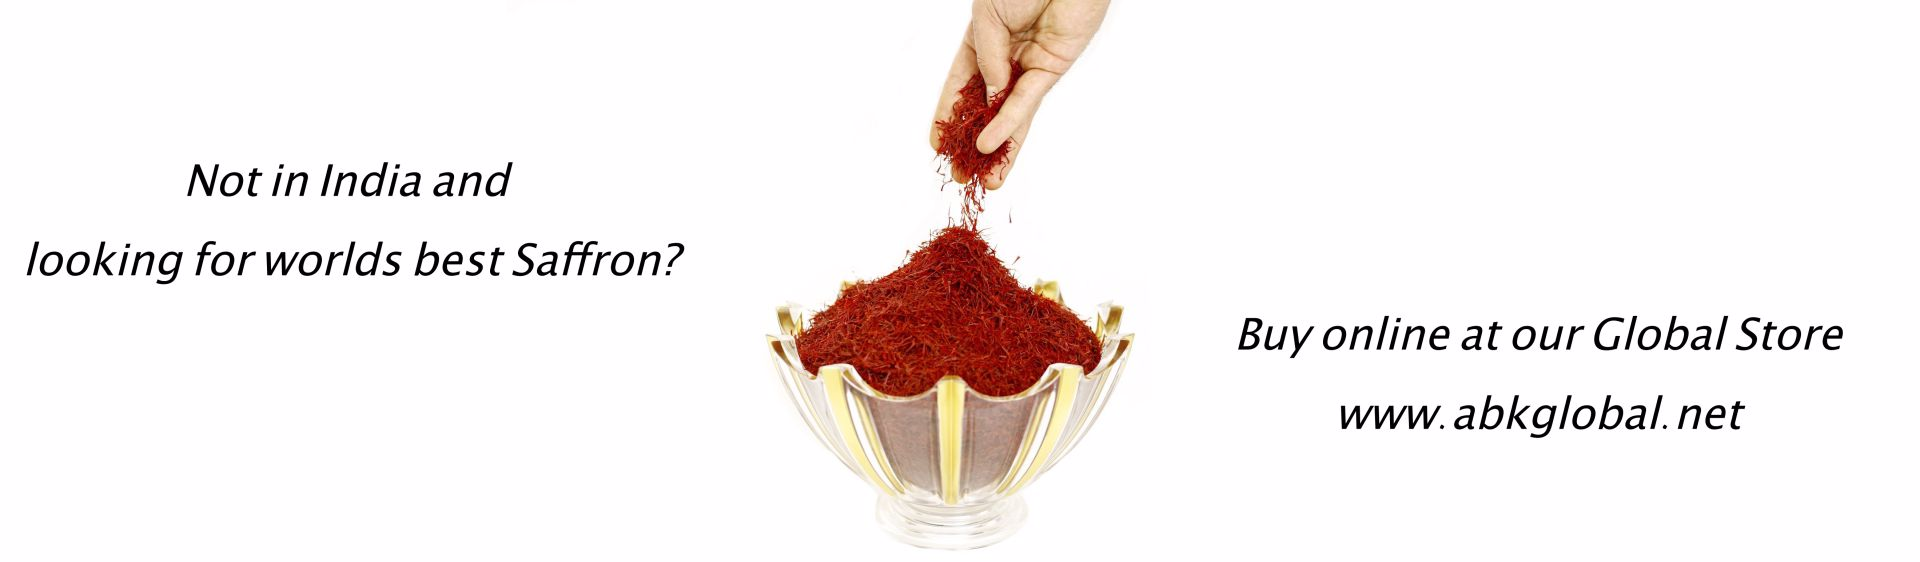 buy-saffron-worldwide